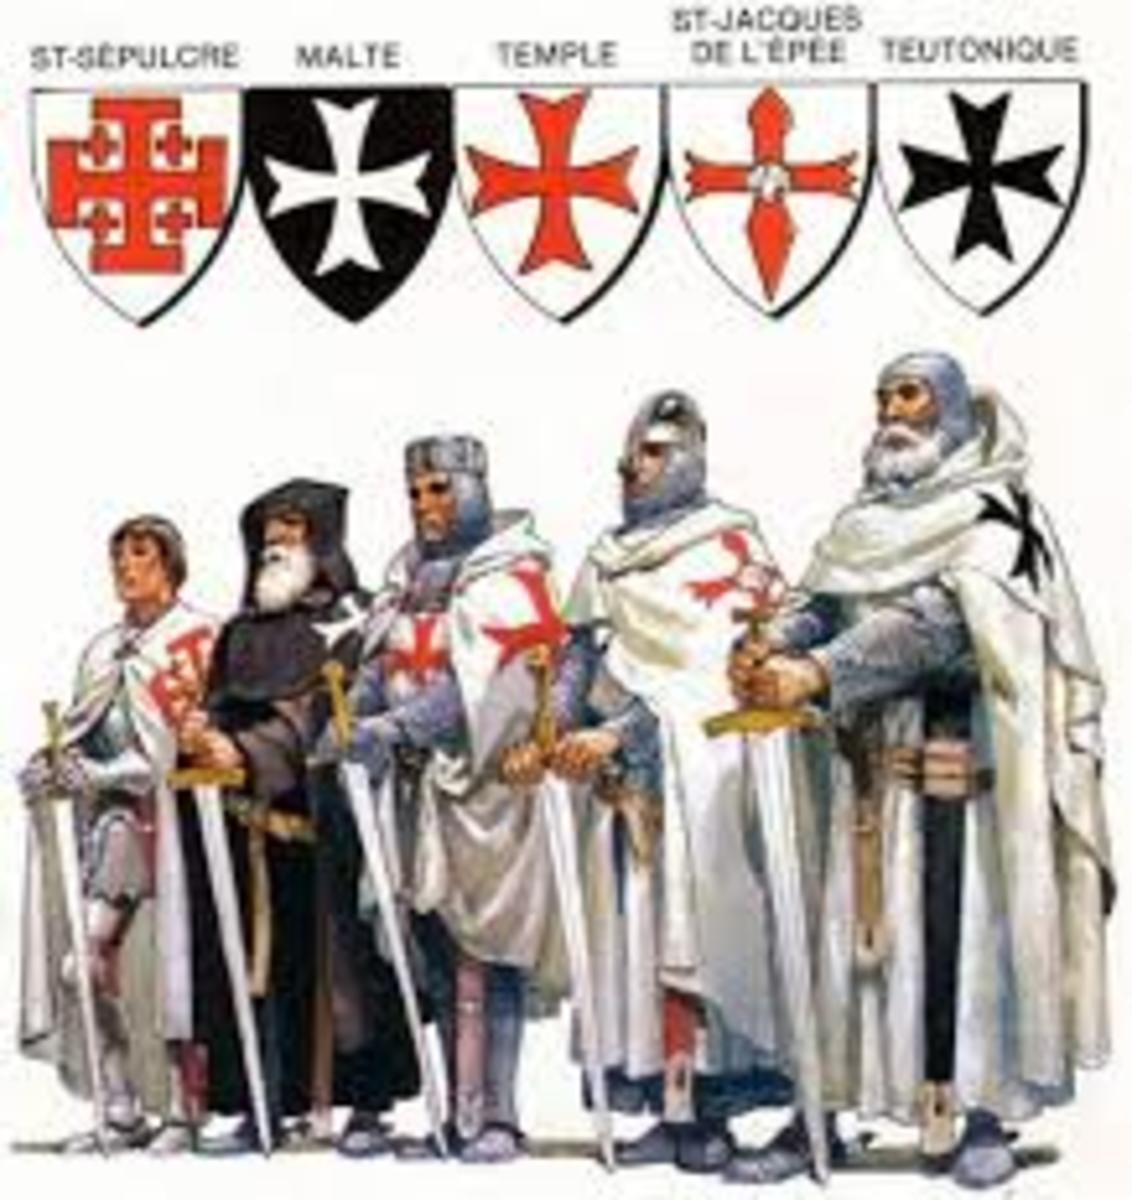 Sonnet XII. Knightly Oaths and Holy Vows